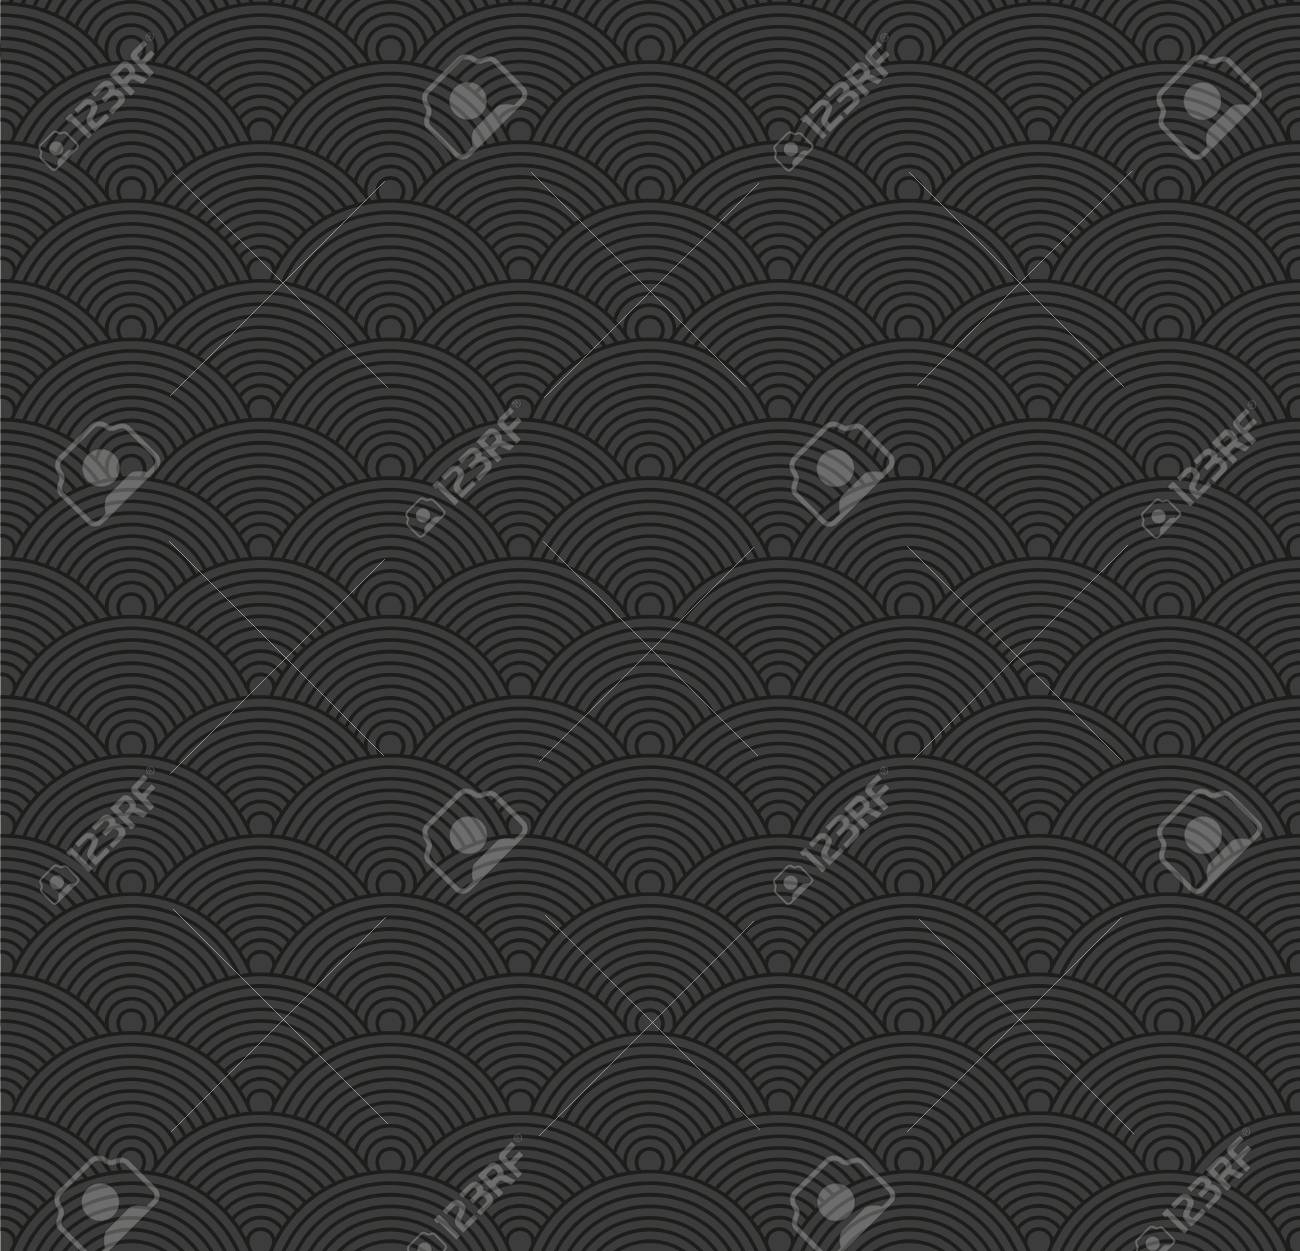 Seamless abstract dark pattern with circles. Stock Vector - 15802356